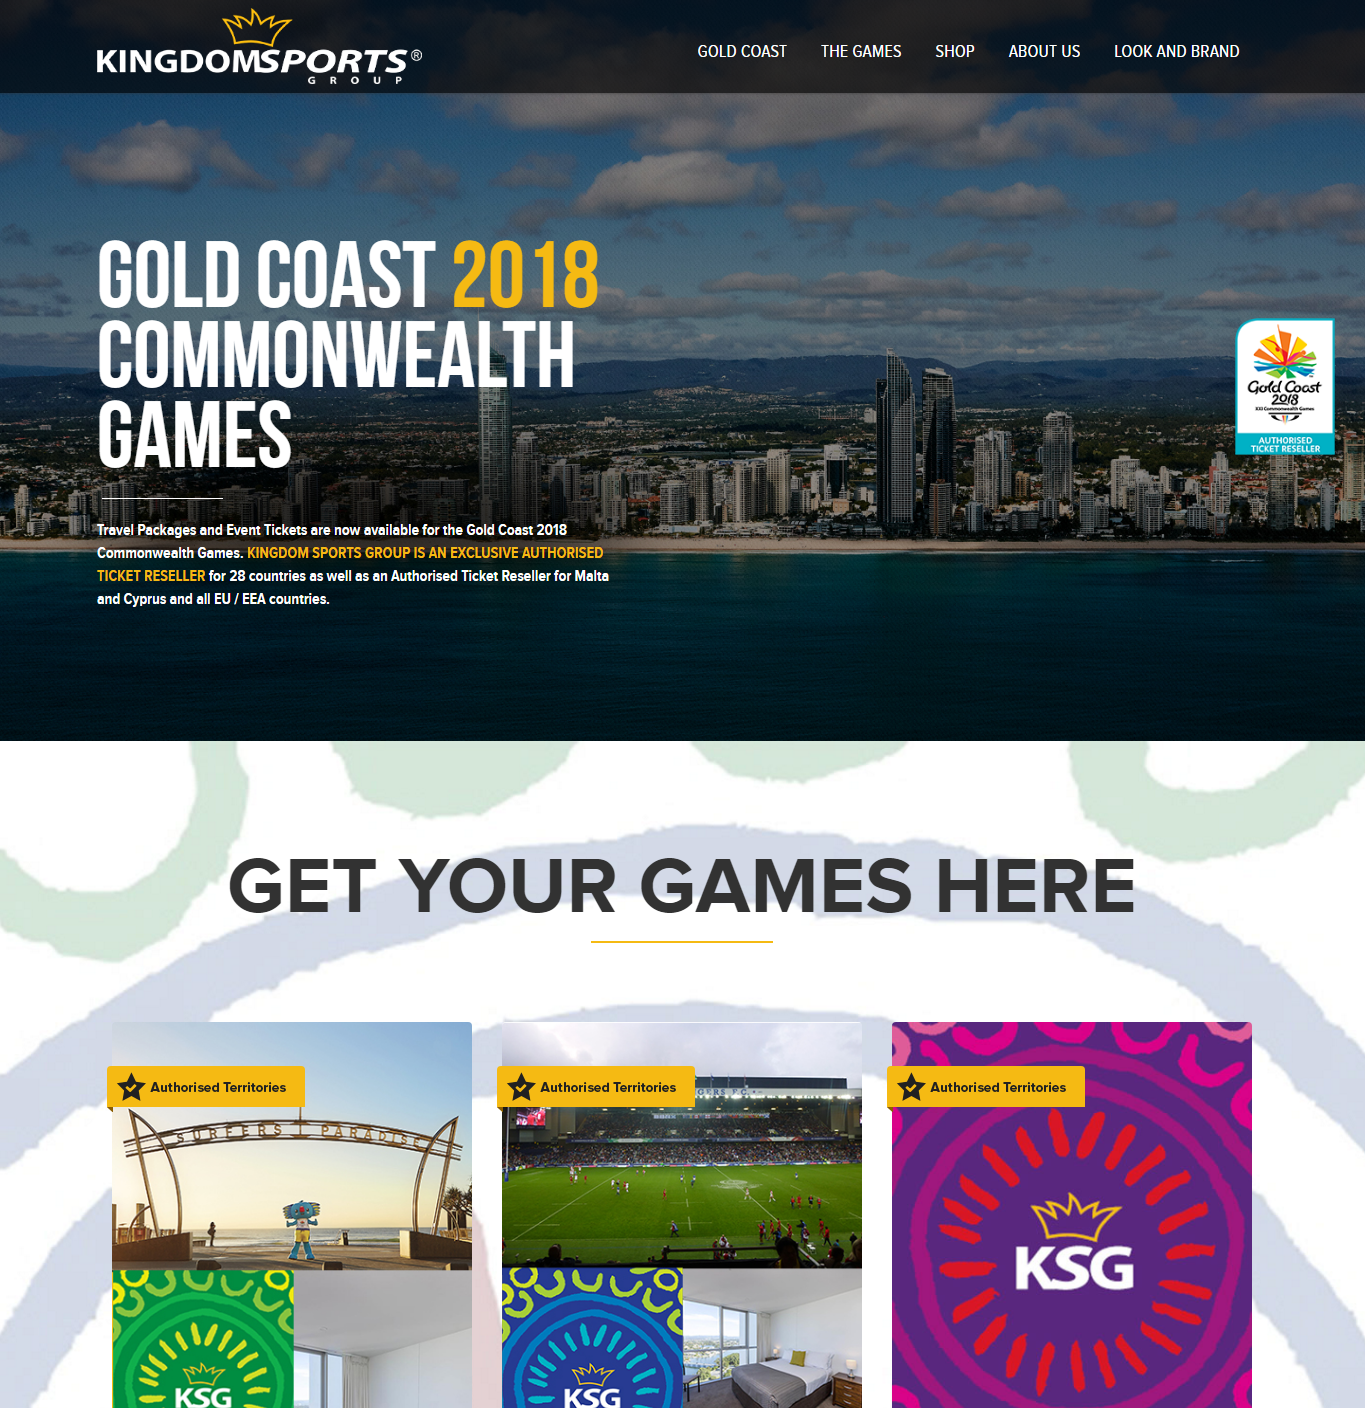 Kingdom Sports Group